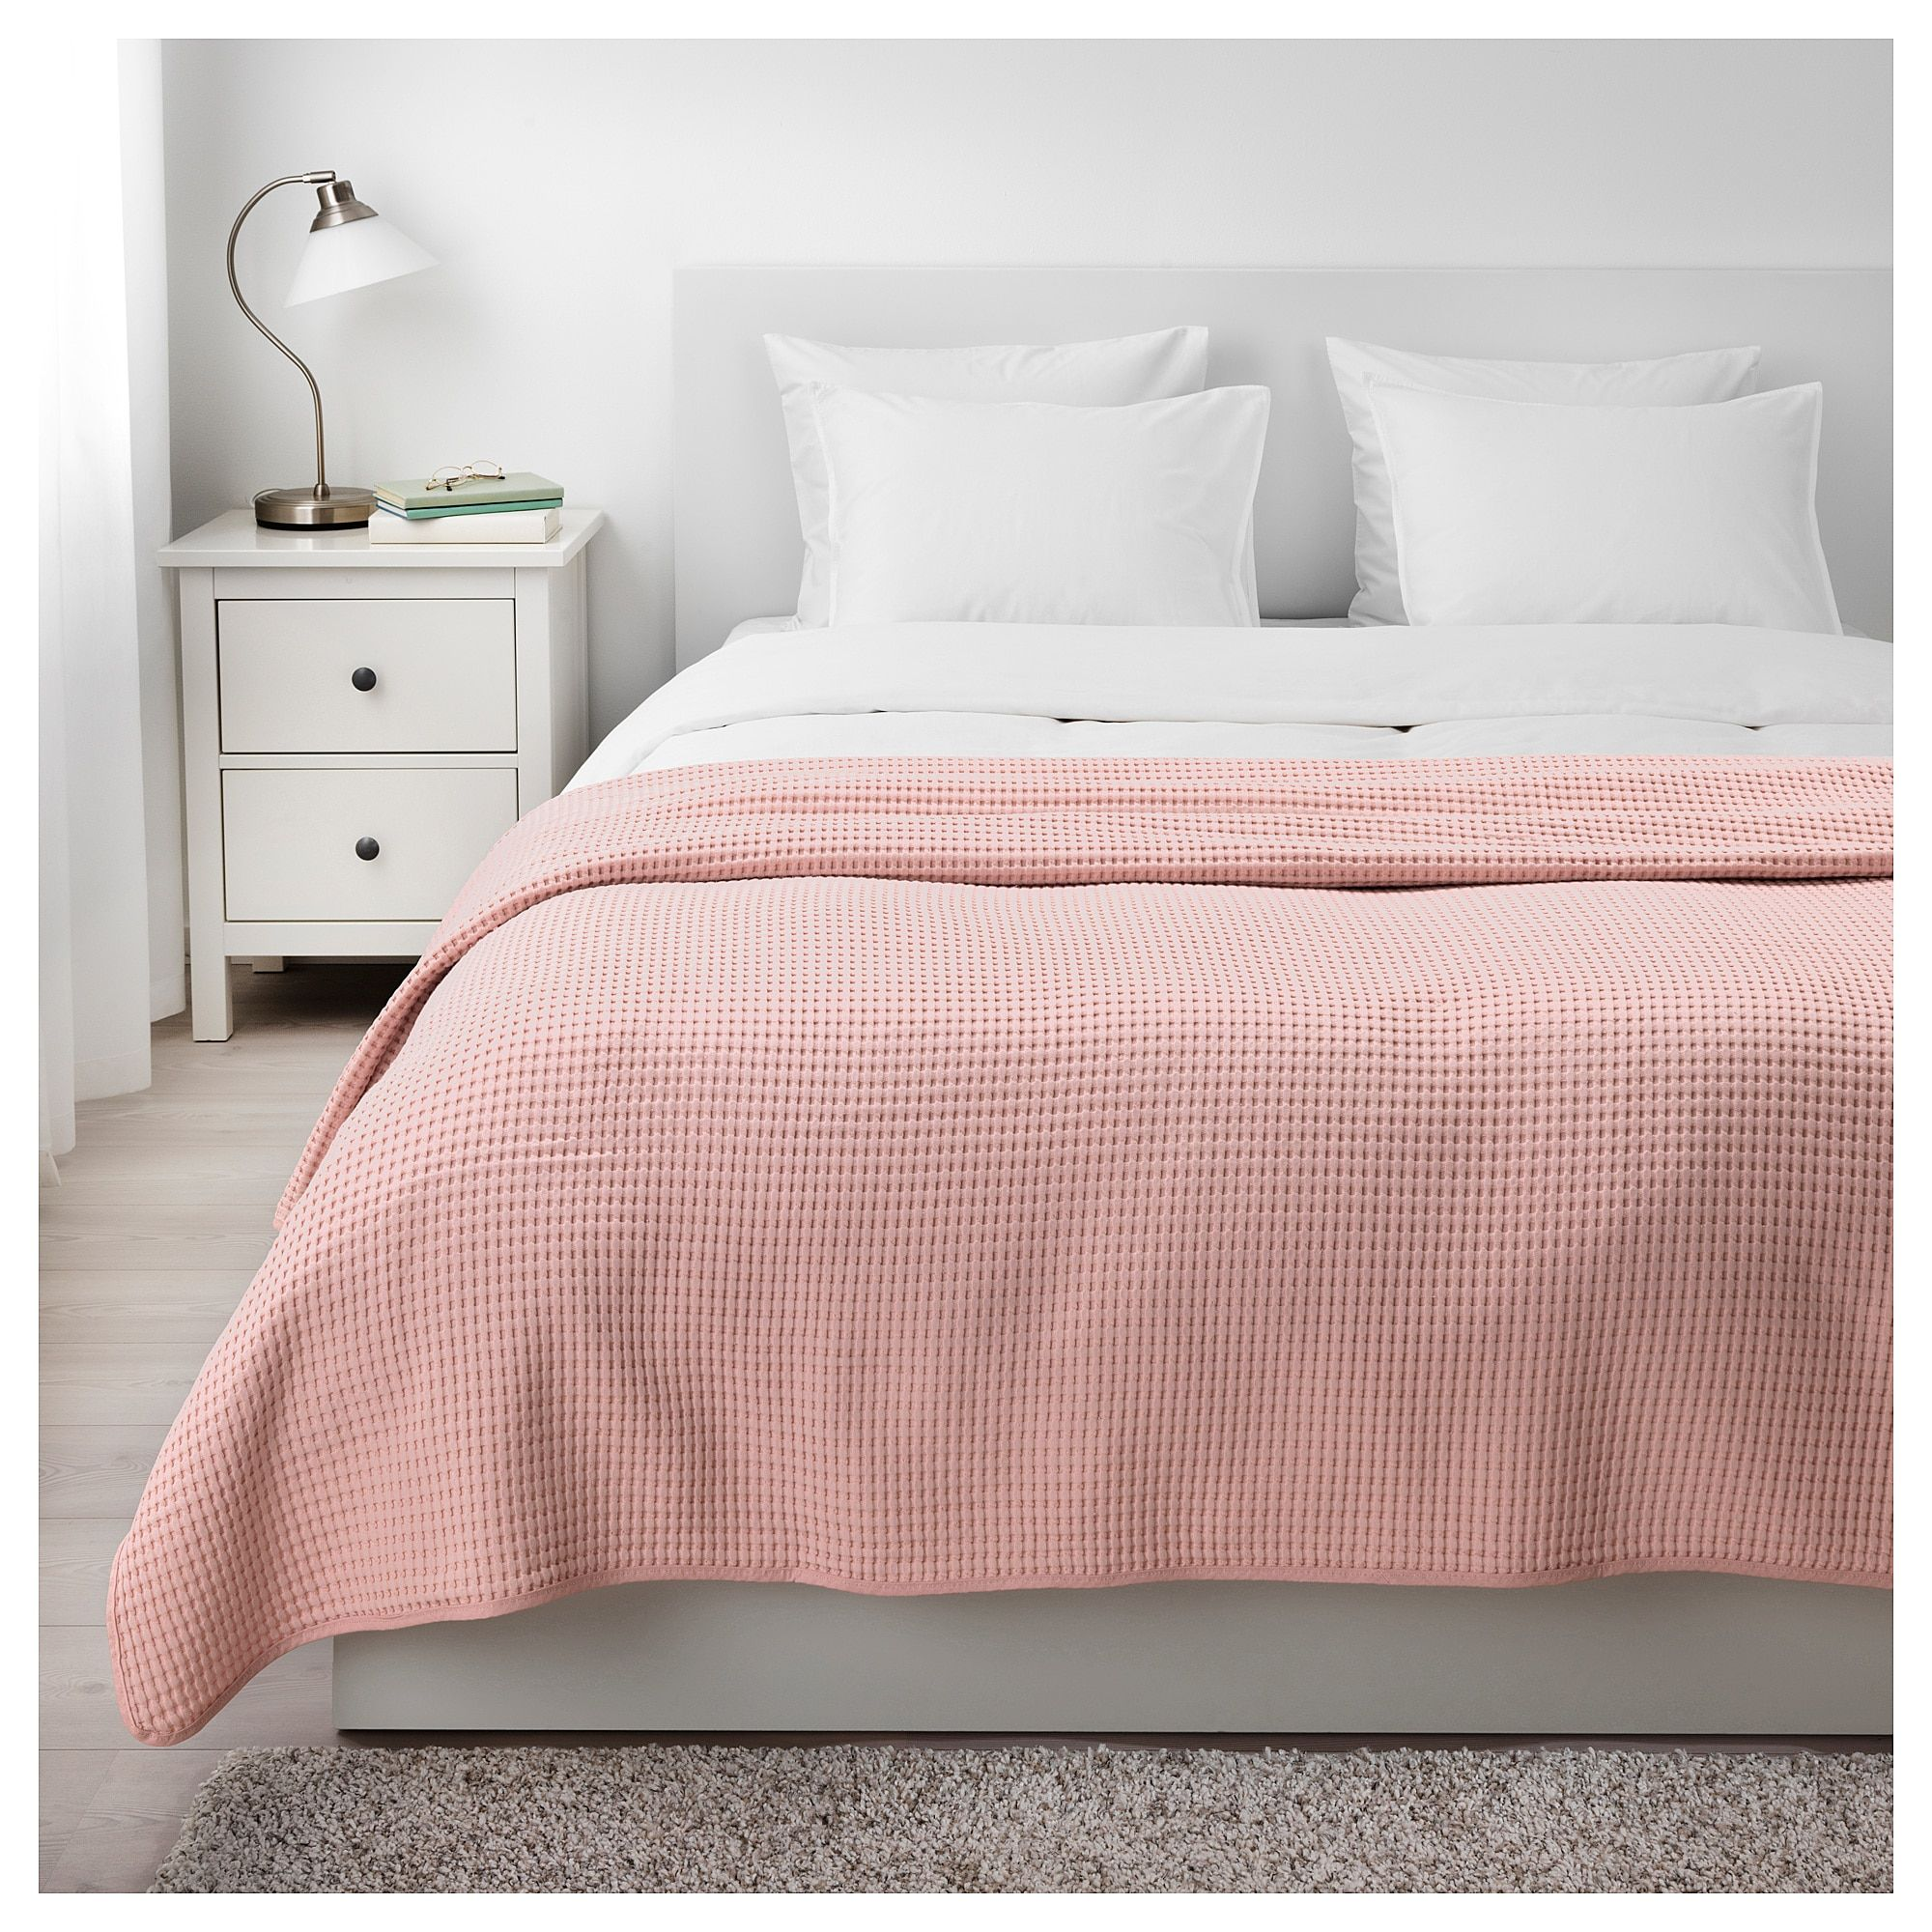 Ikea V 197 Reld Bedspread Light Pink Products In 2019 Bed Spreads Pink Bedspread Ikea Bedspreads